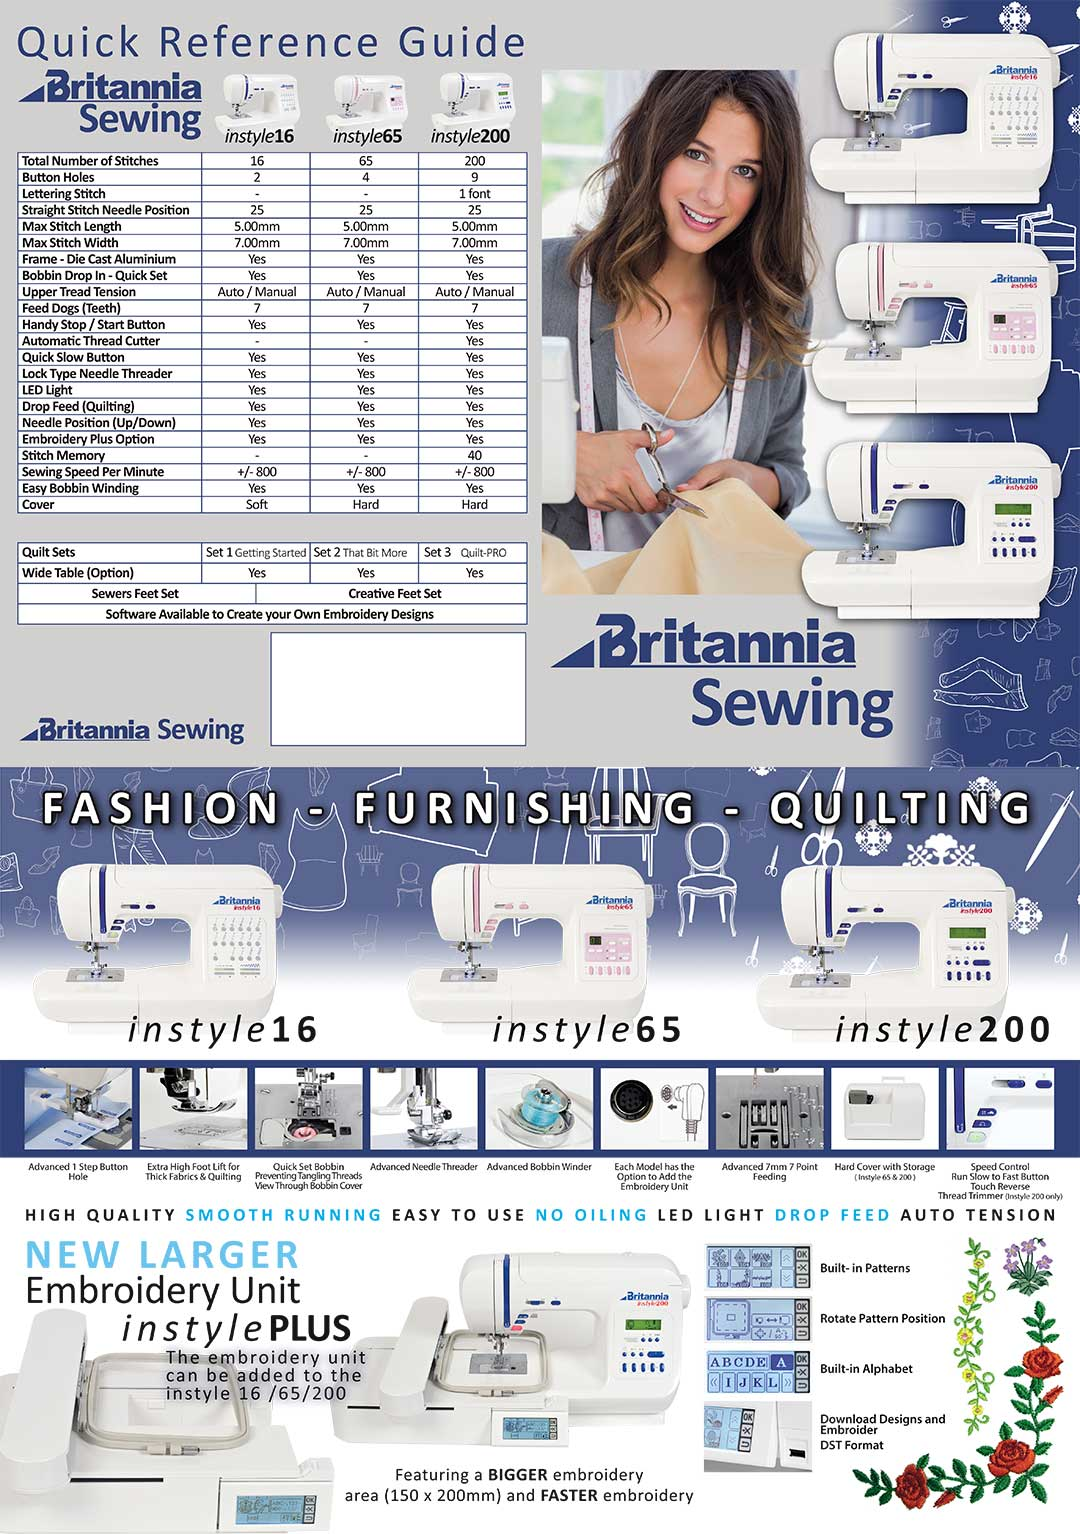 Britannia-Sewing-Flyer